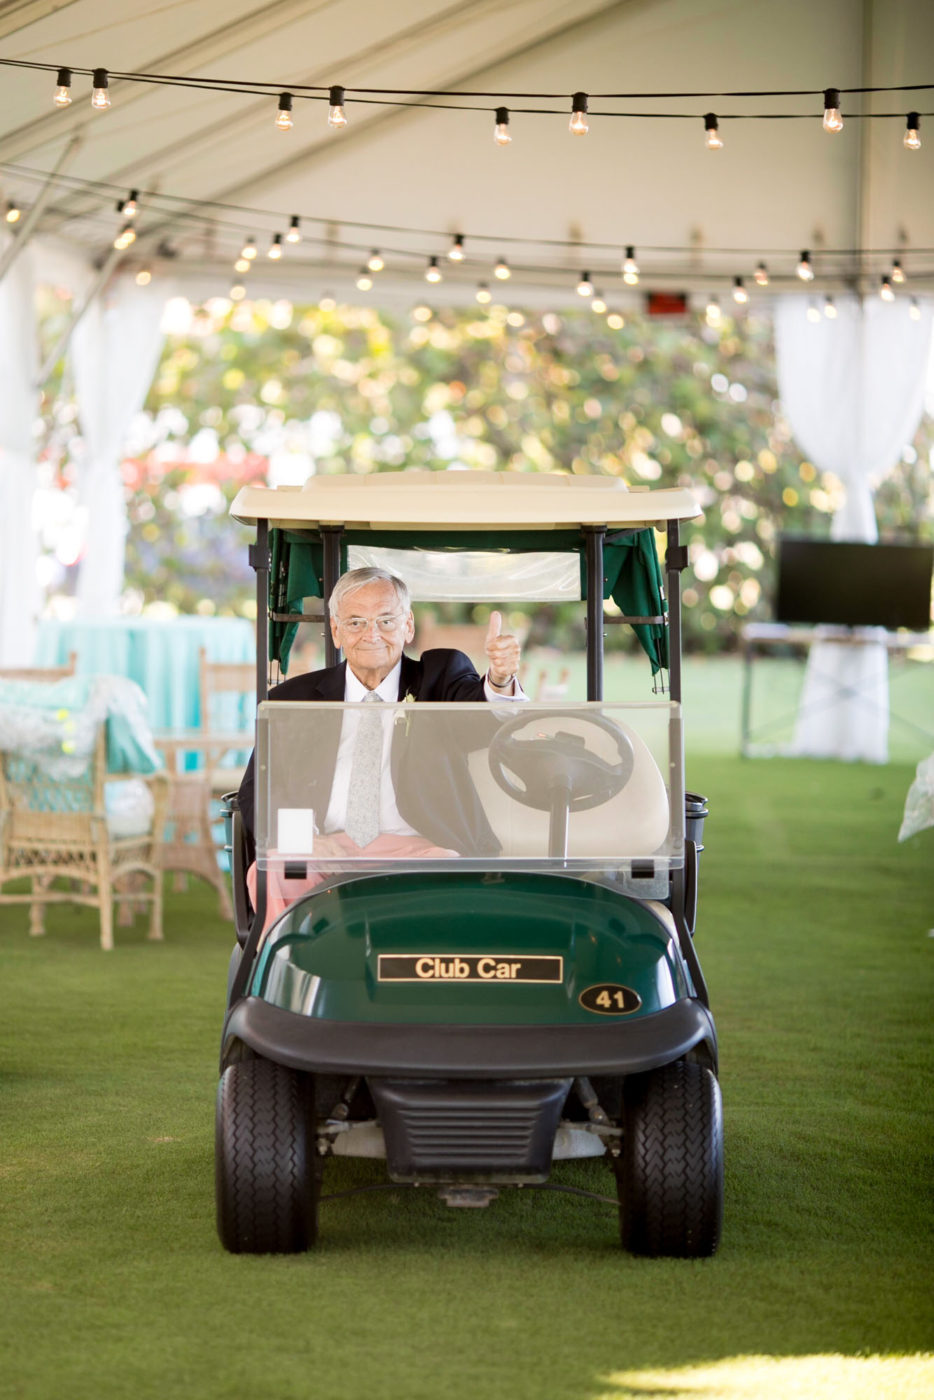 Delray Beach Wedding | Ashley and Trevor - Sara Kauss Photography on golf trolley, golf games, golf hitting nets, golf machine, golf buggy, golf girls, golf players, golf handicap, golf cartoons, golf card, golf words, golf tools, golf accessories,